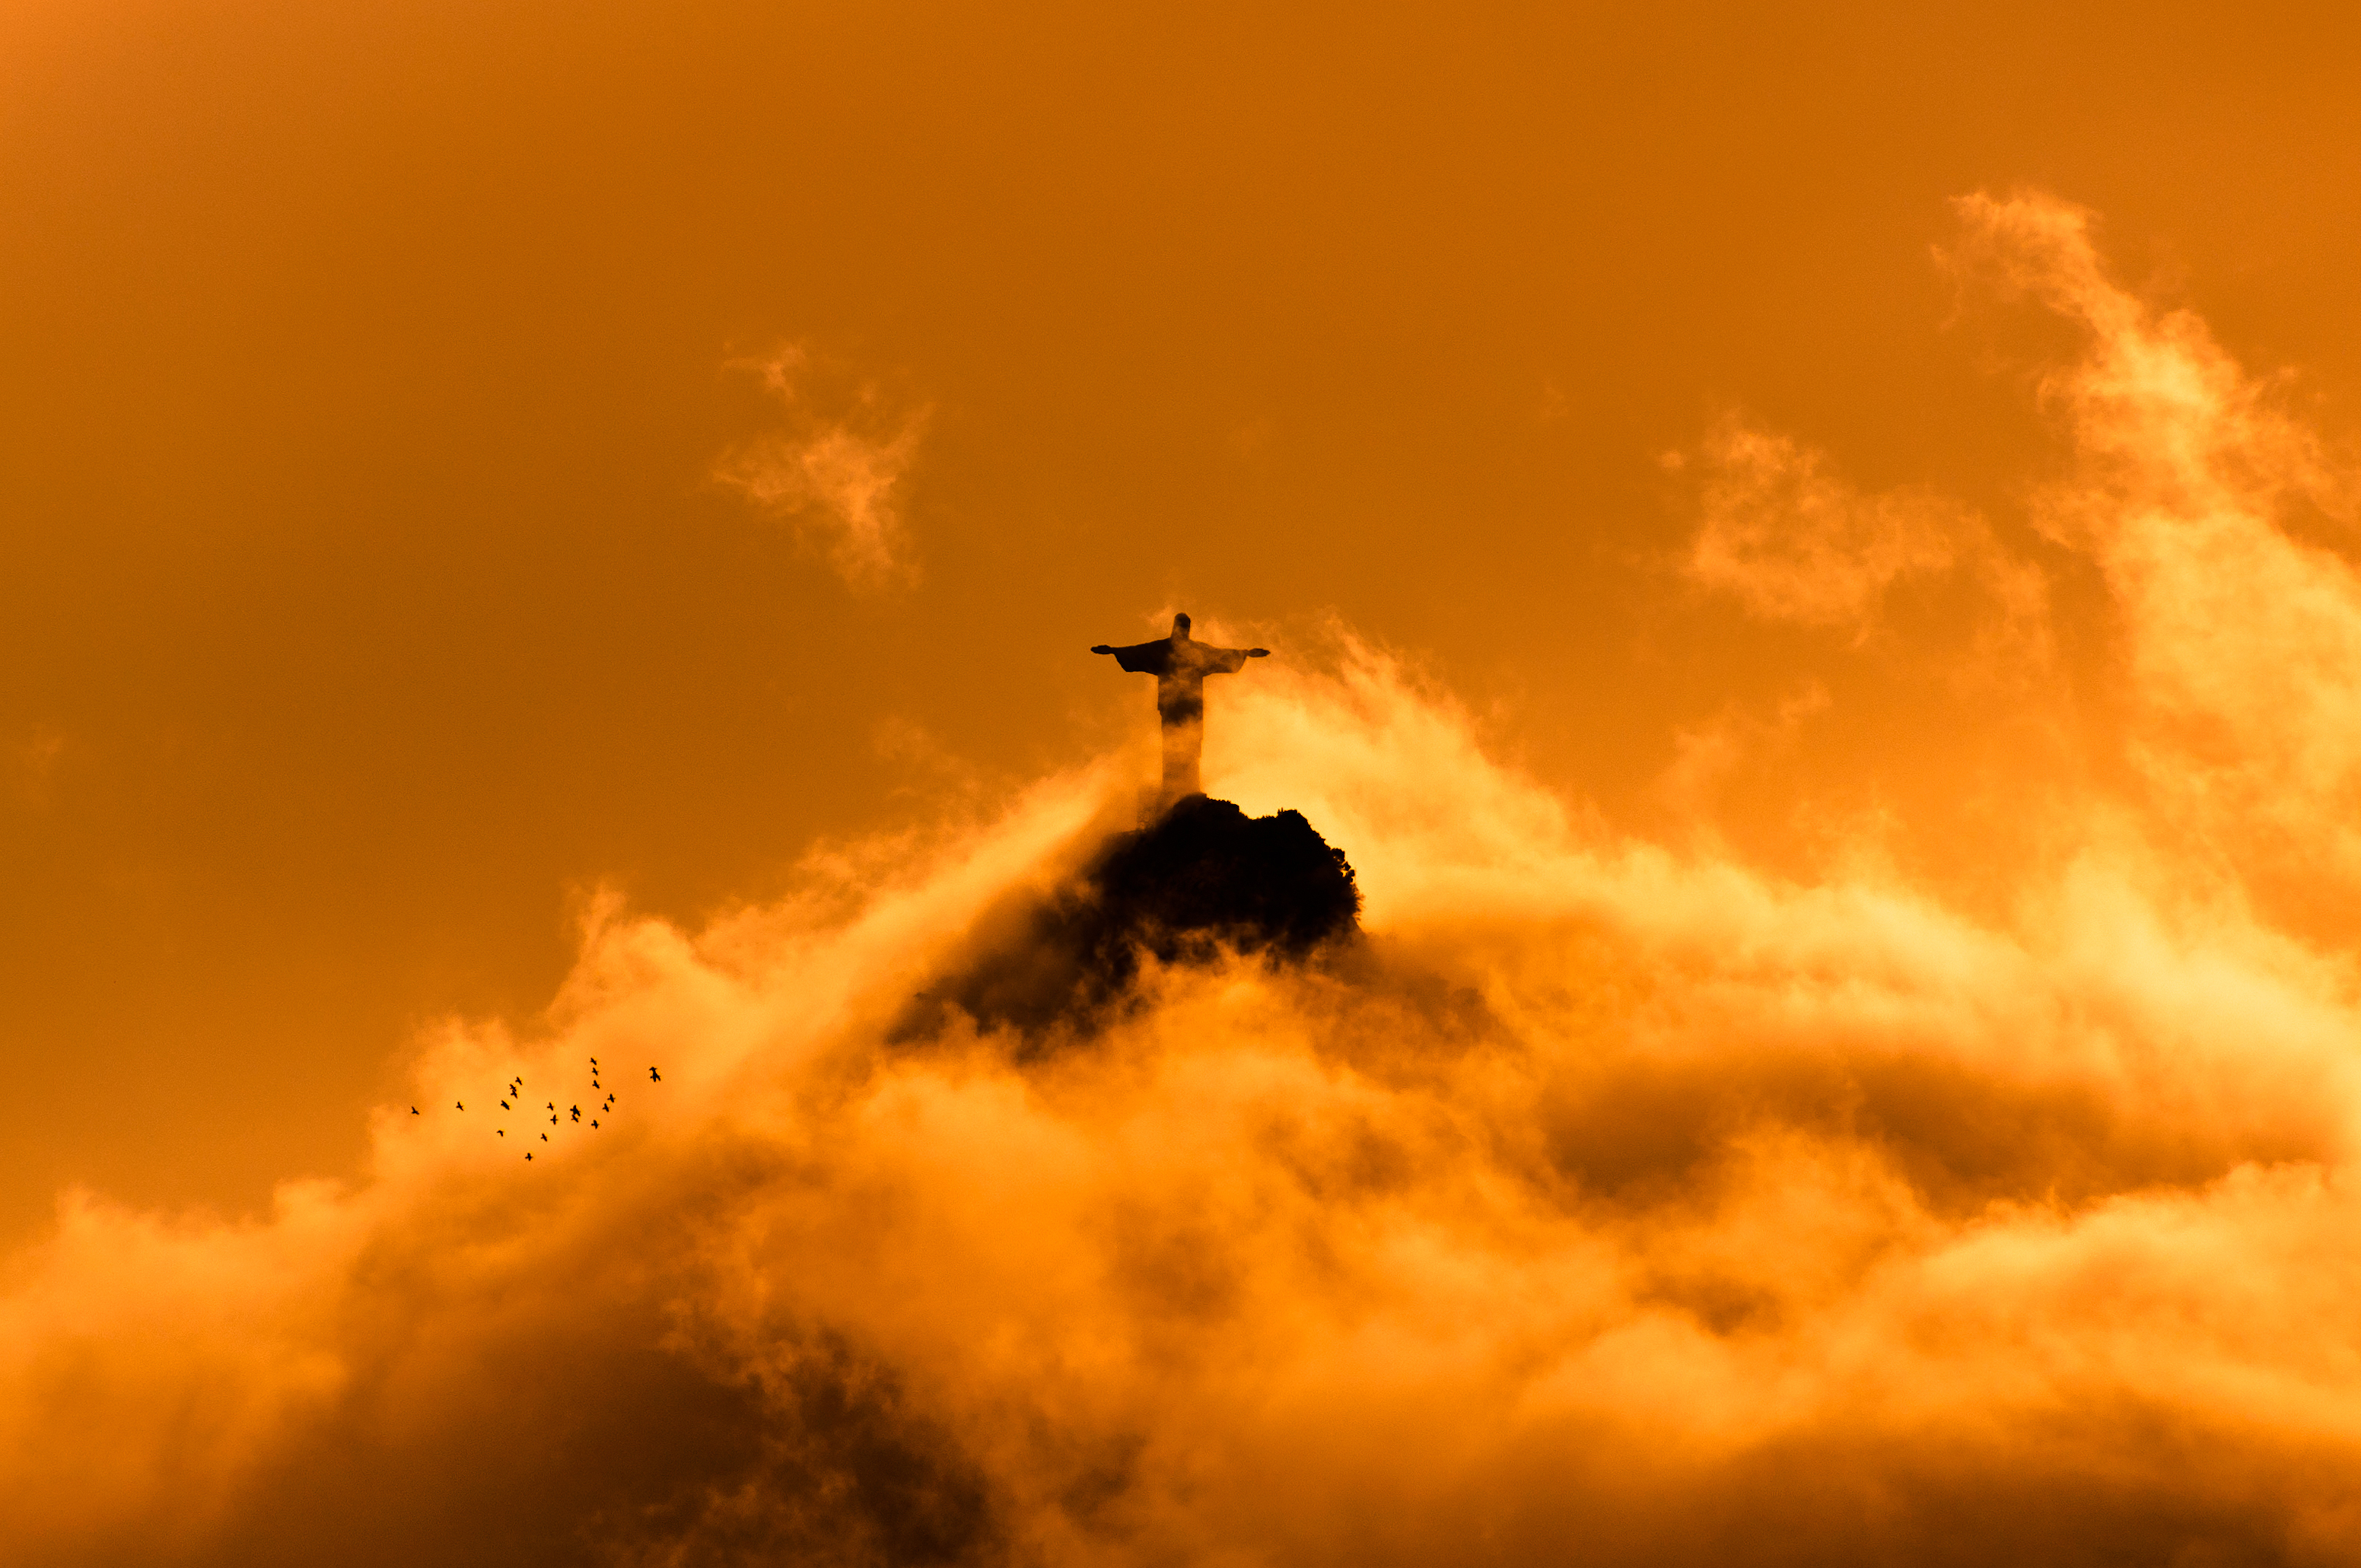 Jesus in Clouds by Sunset 2